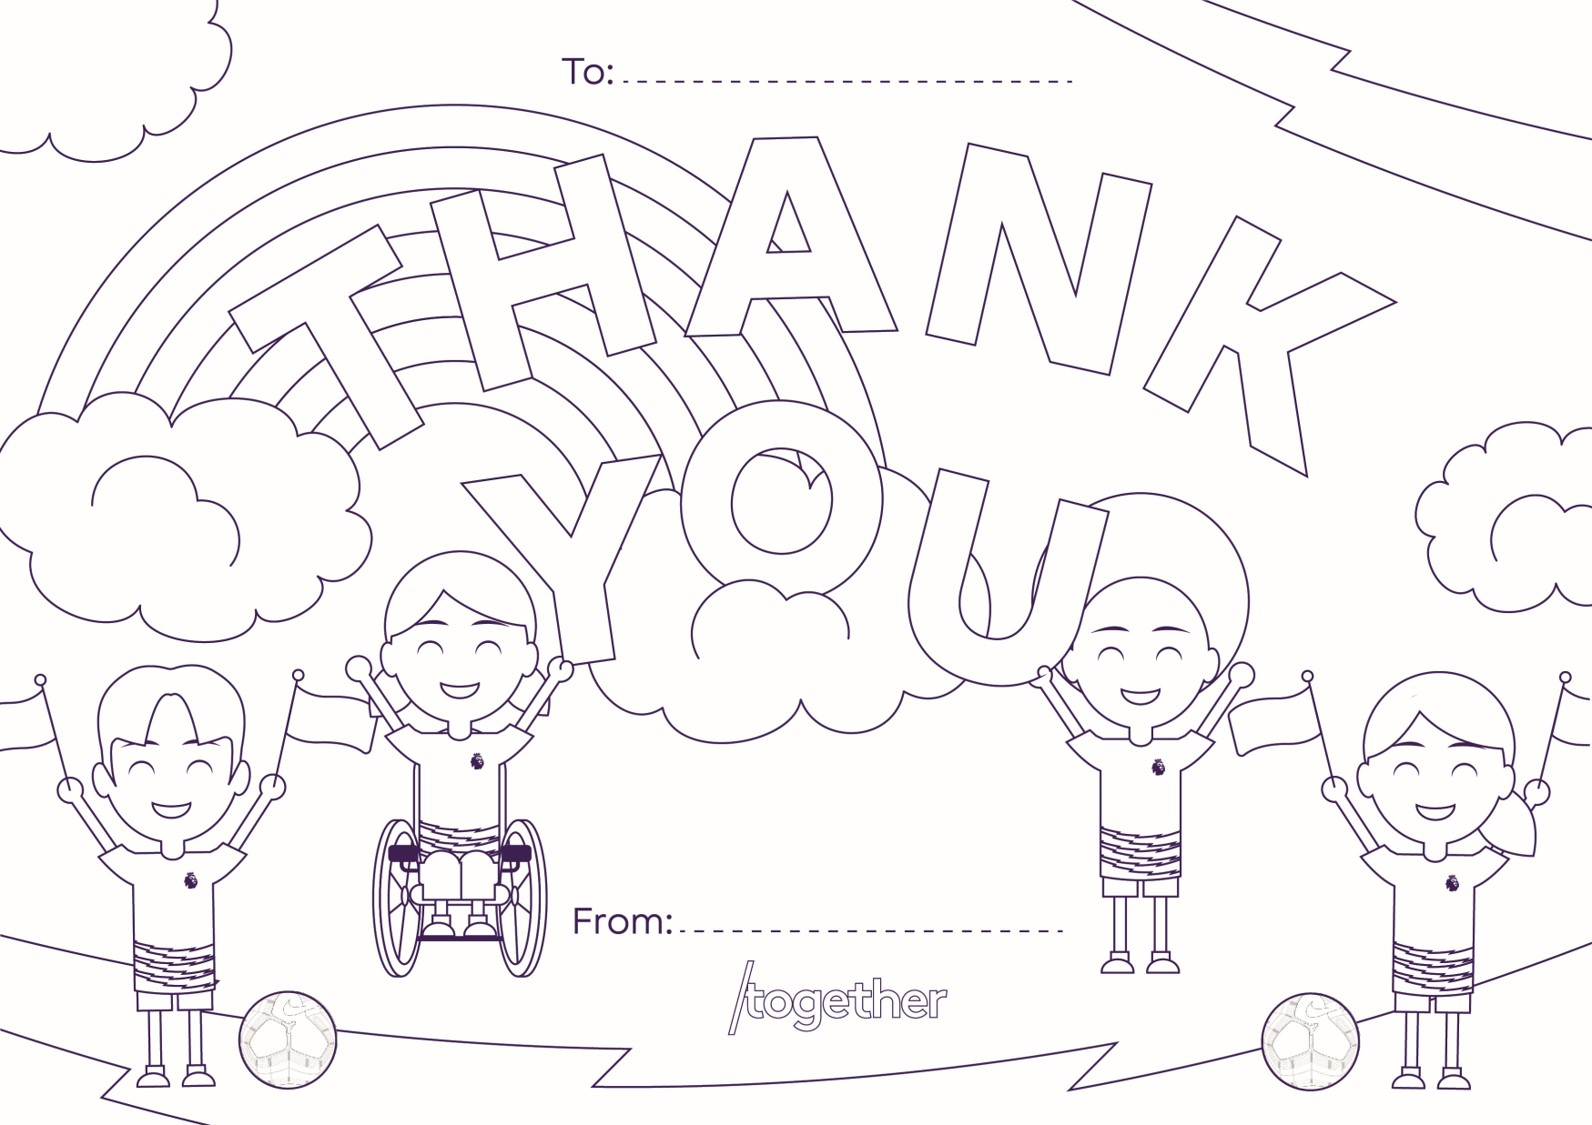 'Thank you' template with children and footballs